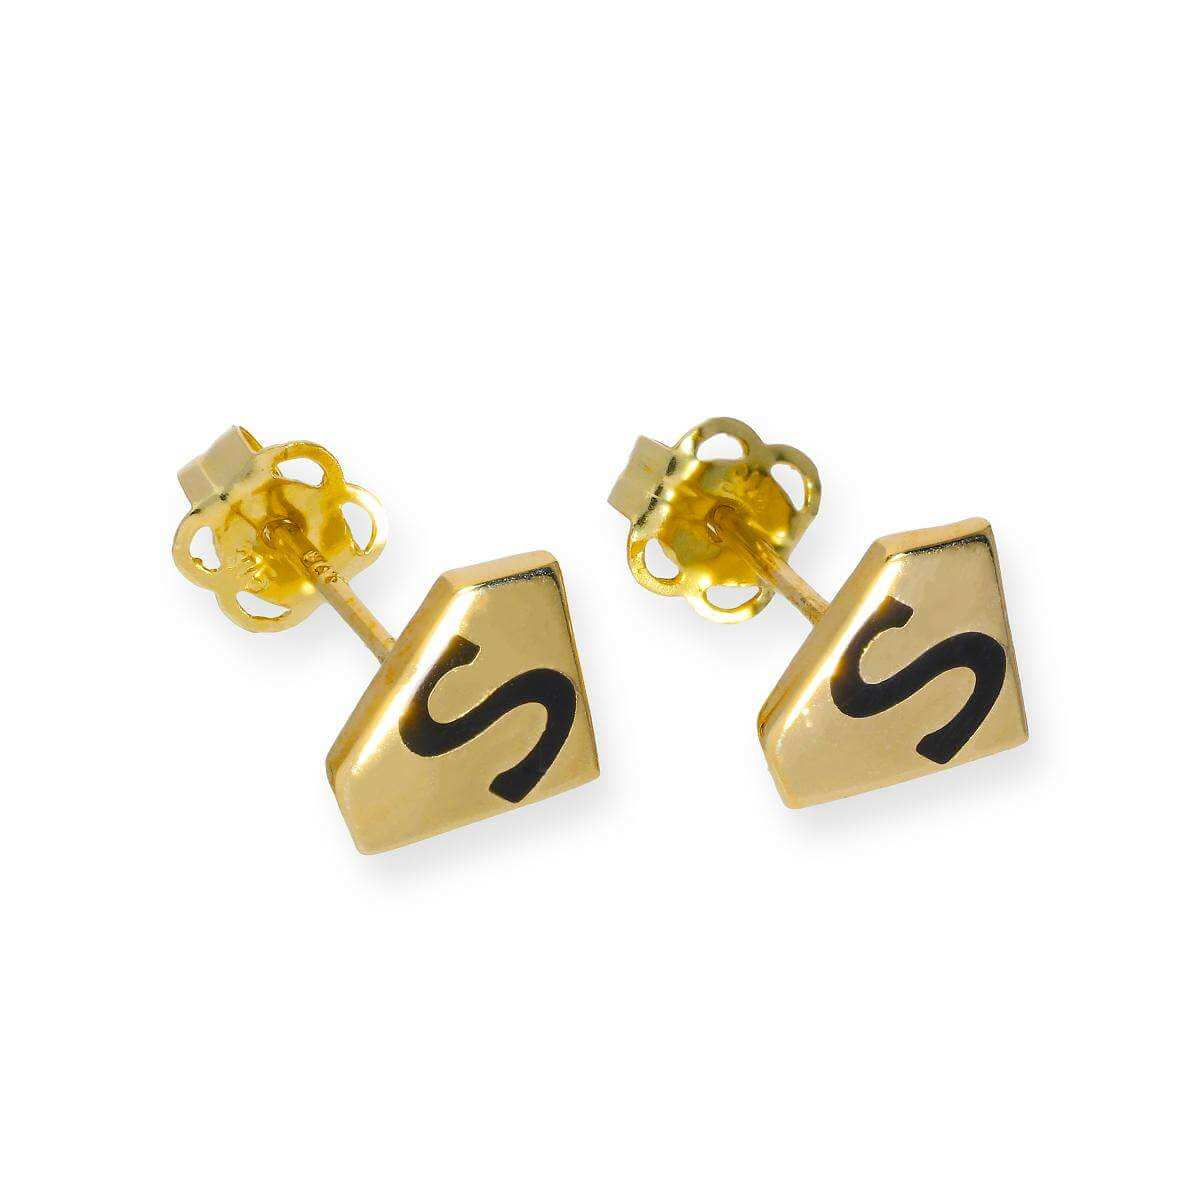 9ct Gold & Black Enamel S Shield Stud Earrings